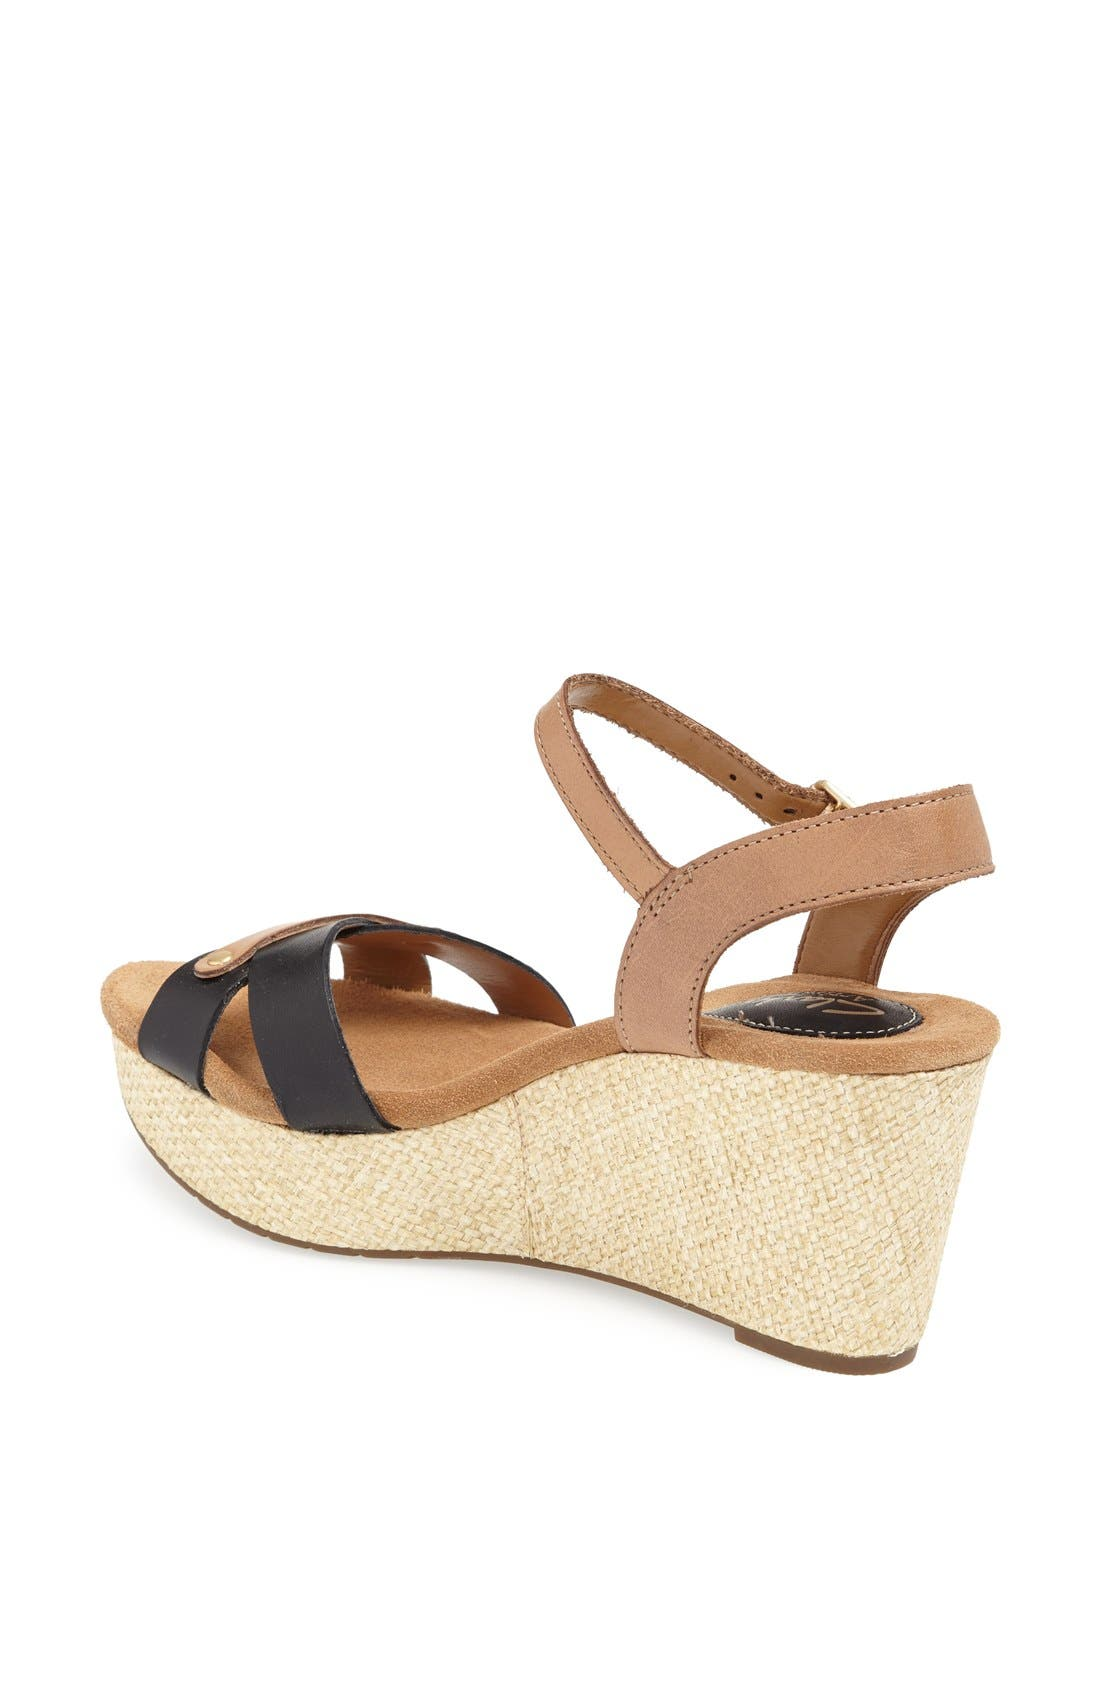 CLARKS<SUP>®</SUP>,                             'Caslynn Regina' Sandal,                             Alternate thumbnail 2, color,                             005